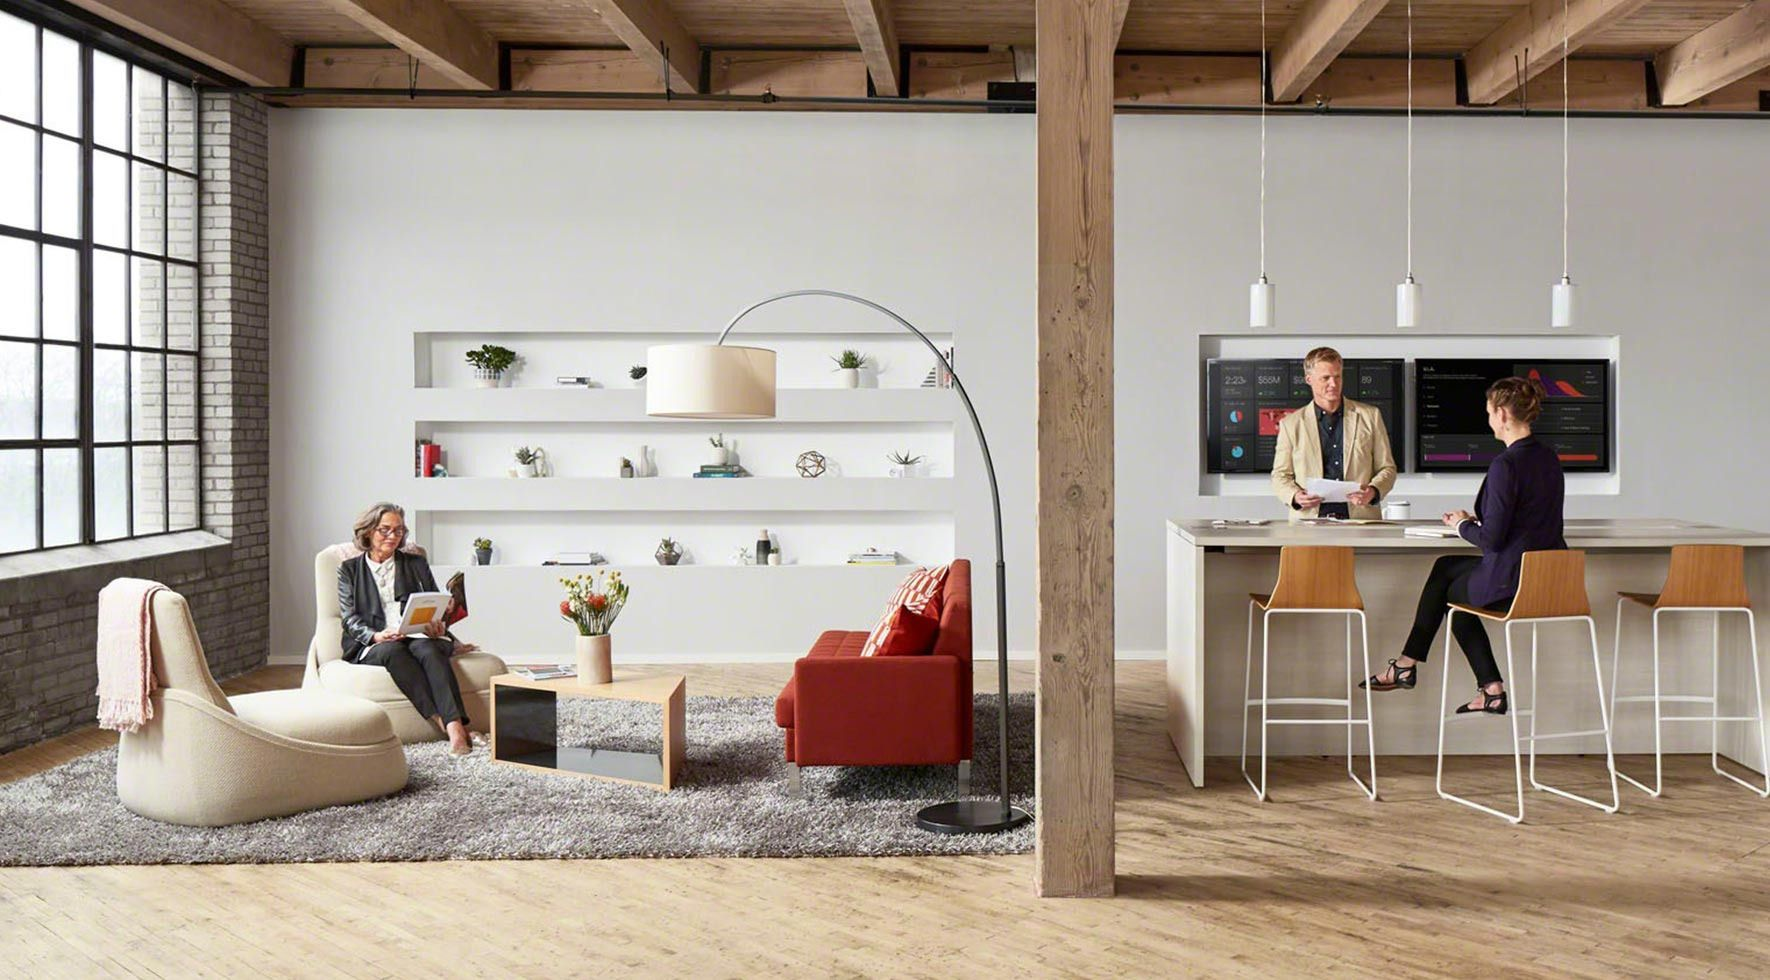 Coalesse Hosu Lounge, Millbrae Contract Lounge And Sebastopol Tables Create  A Lounge Space Adjacent To A Standing Height Table With Montara650 Stools.